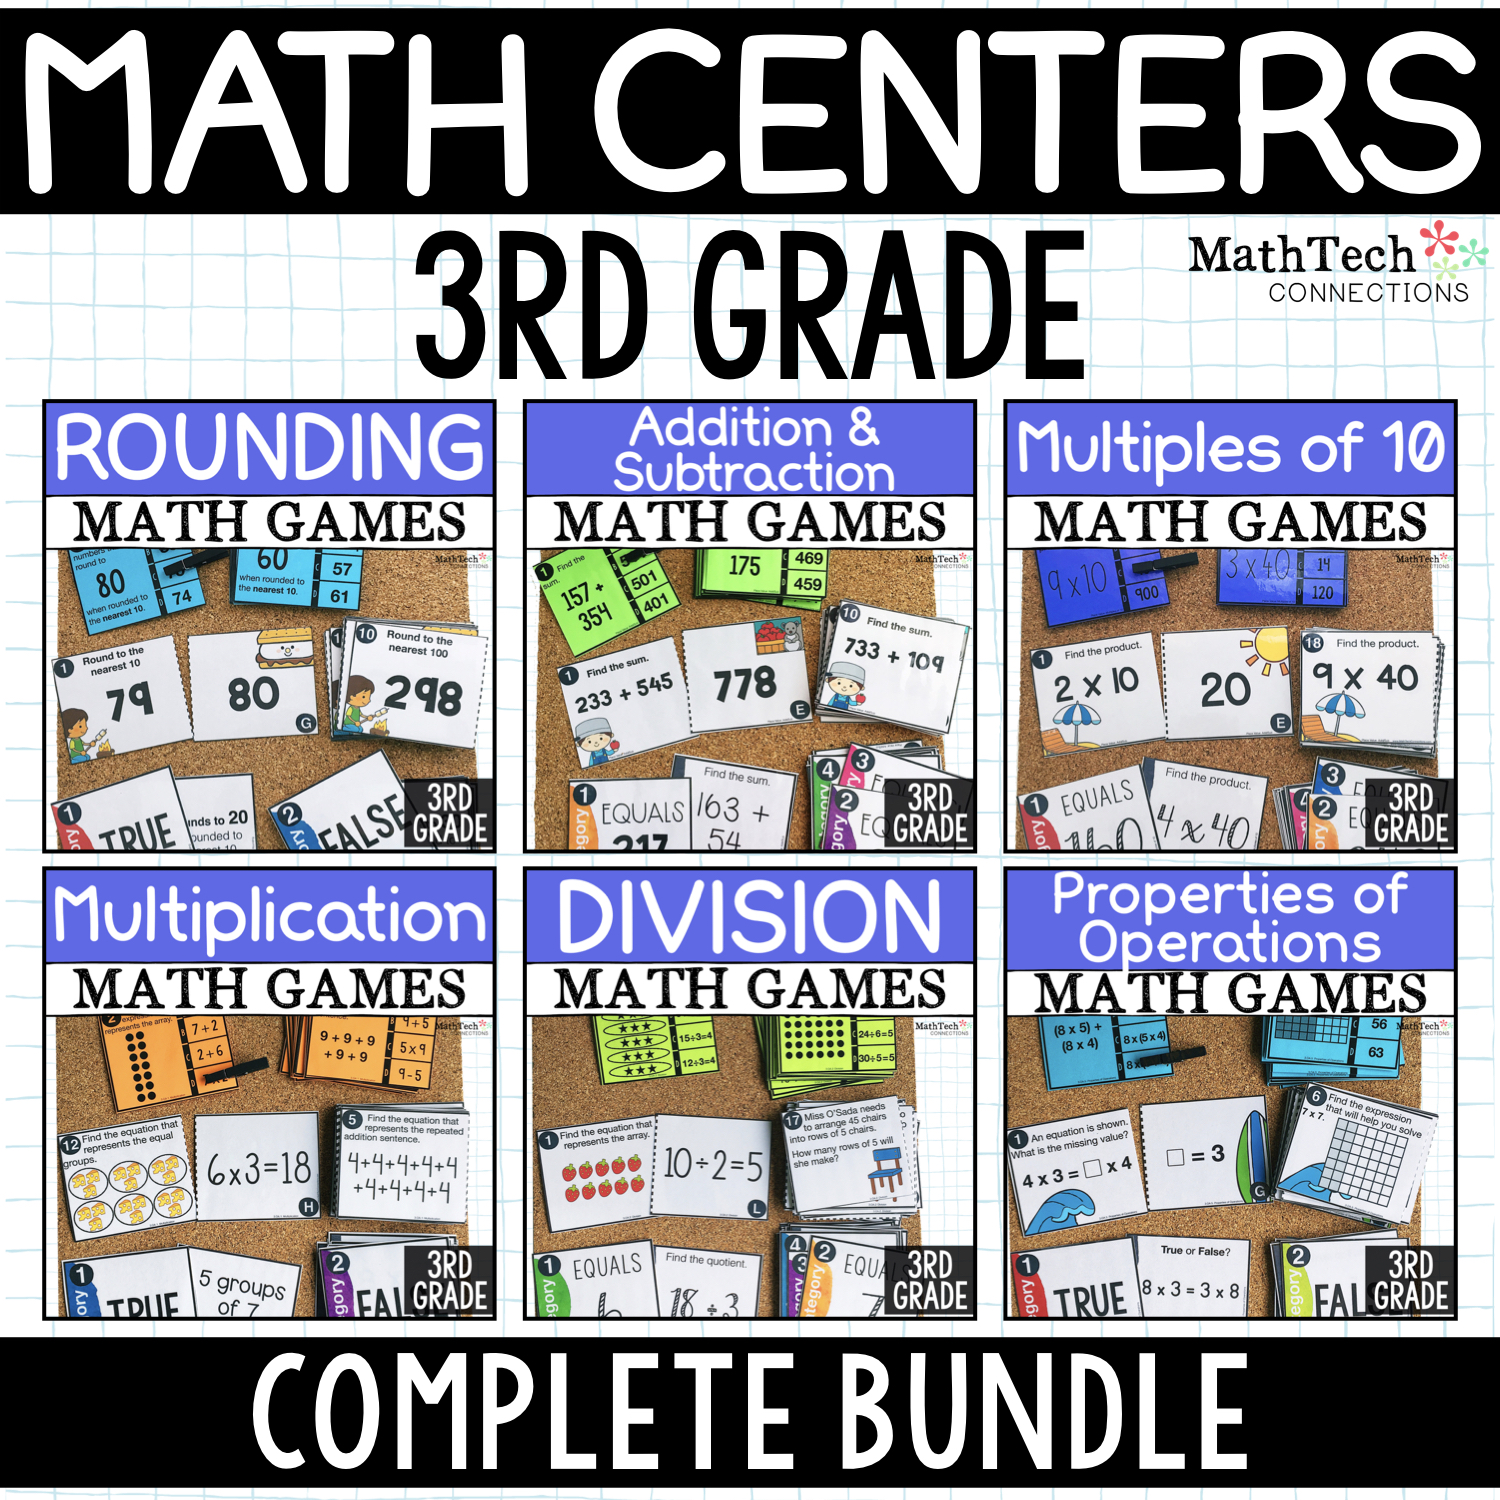 3rd Grade Math Centers for Math Workshop - Three math activities for third grade math centers